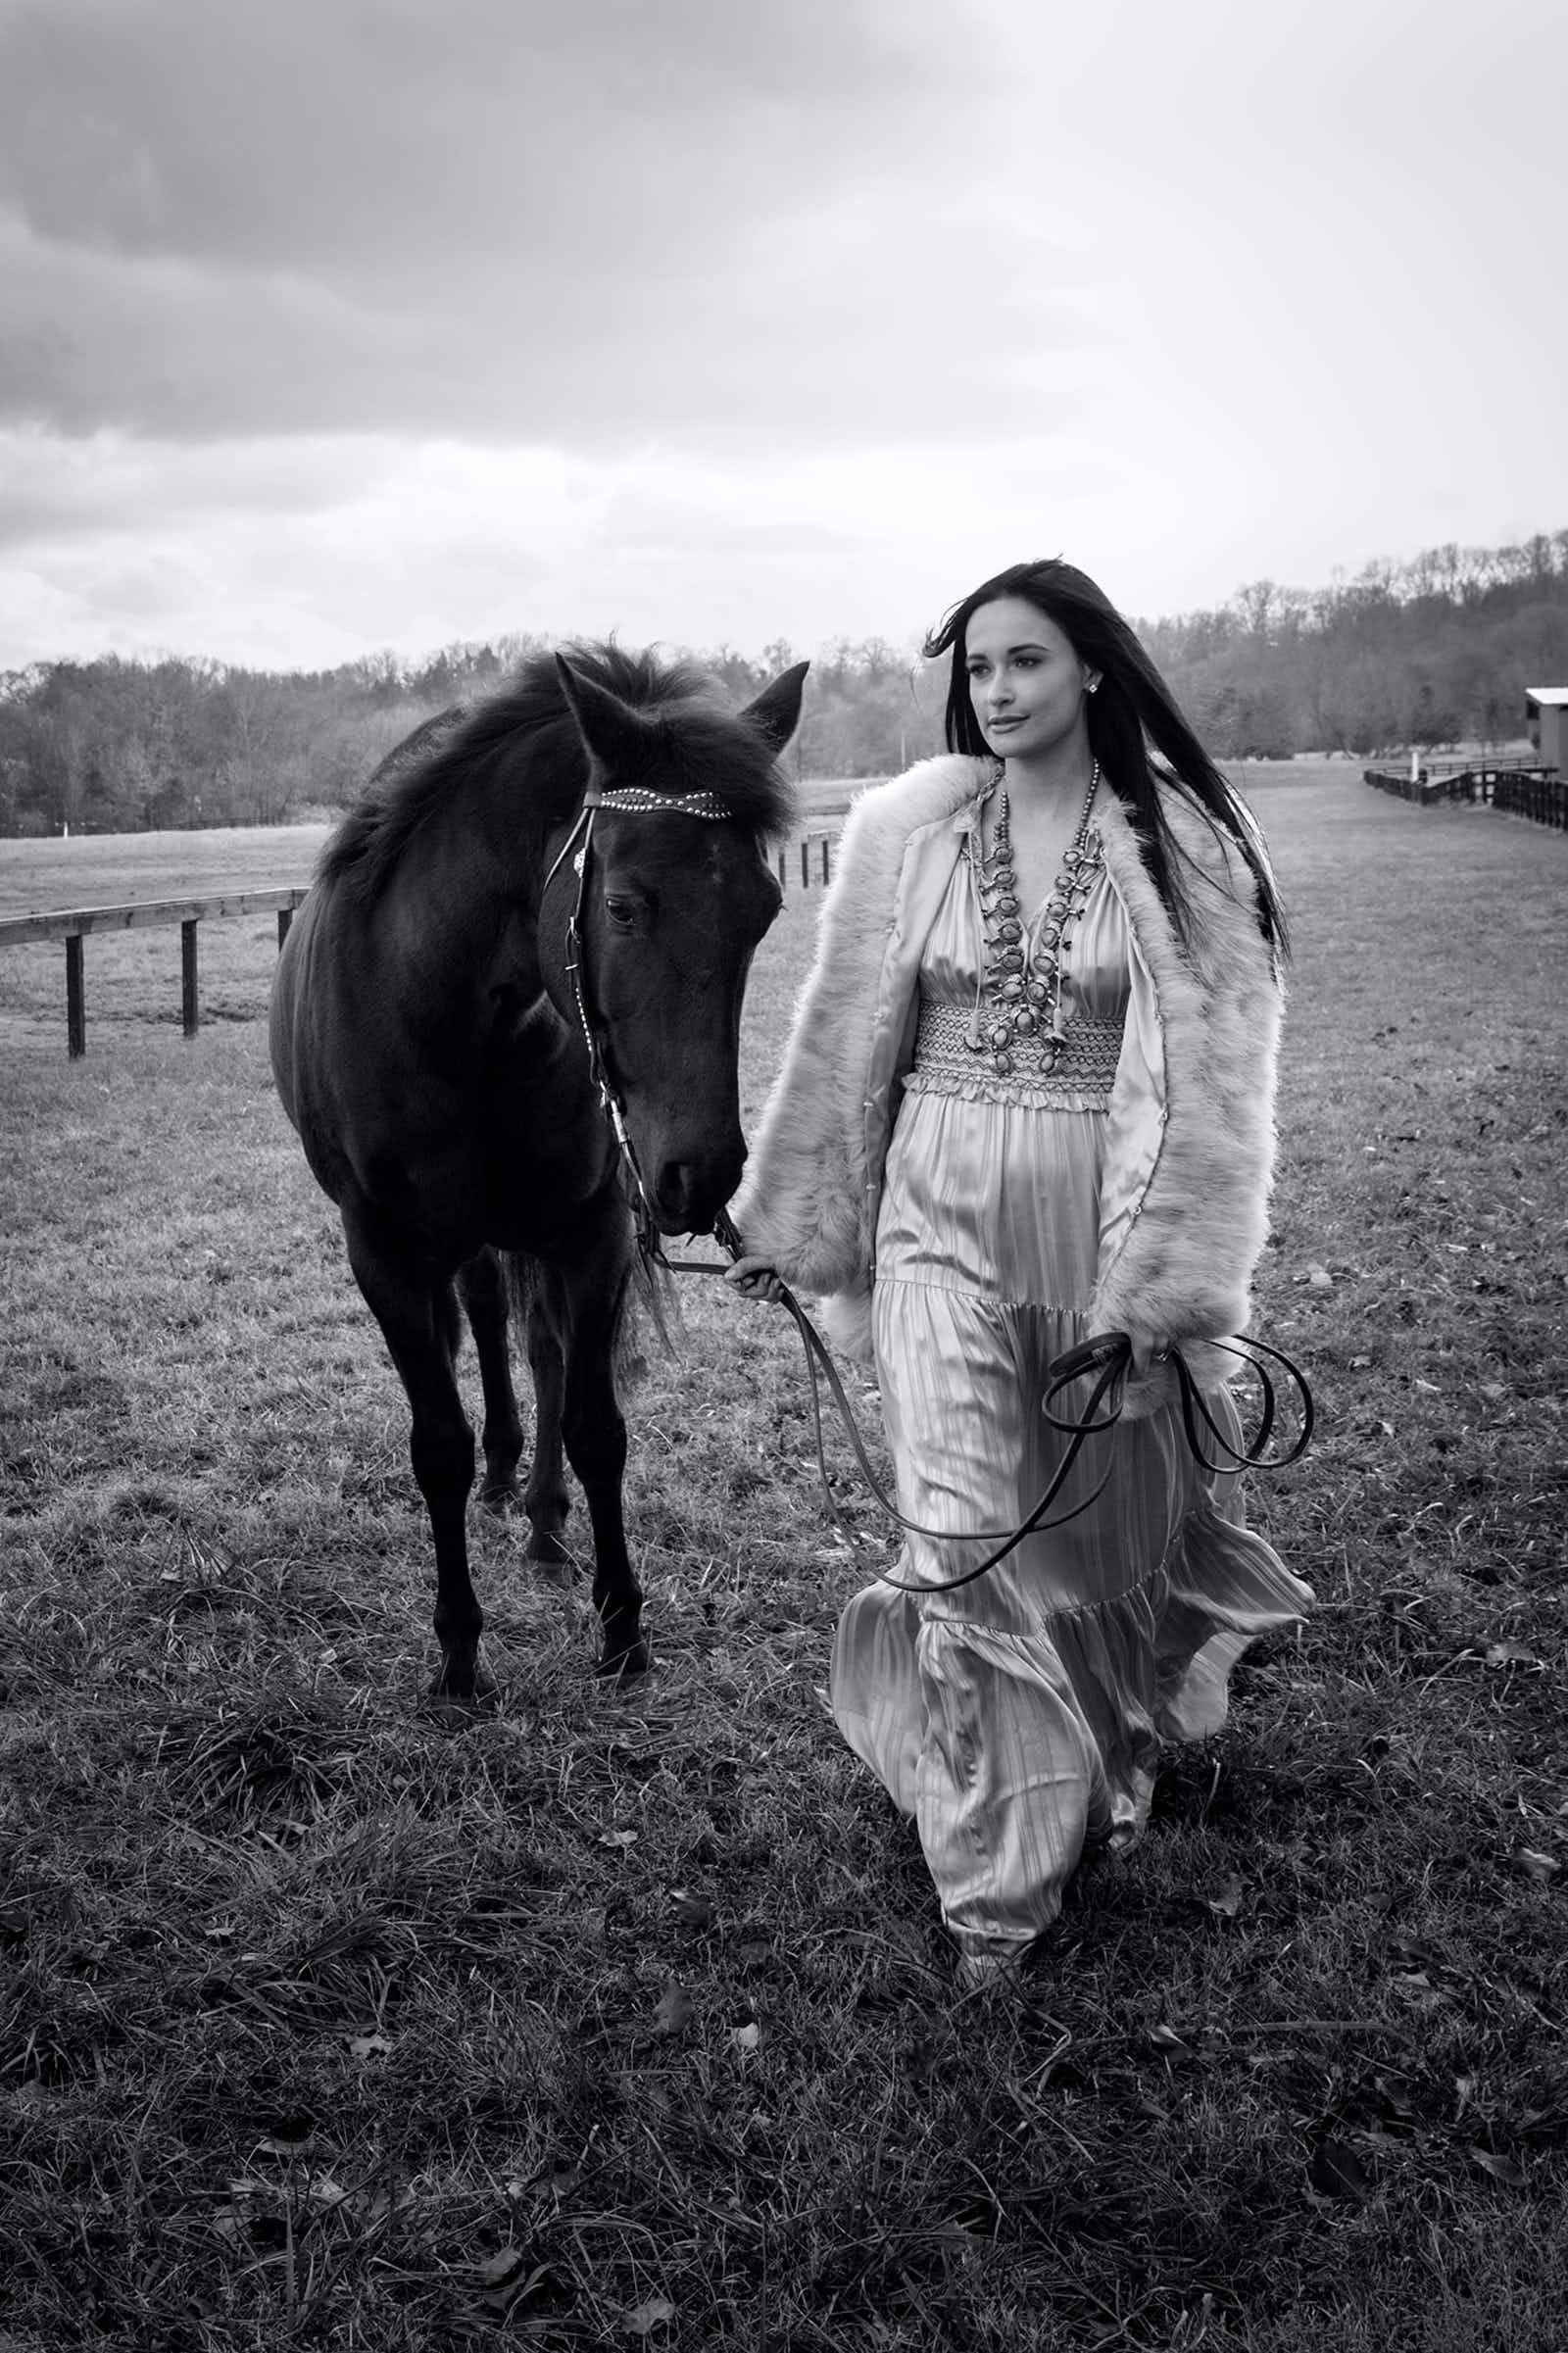 Kacey Musgraves and horse